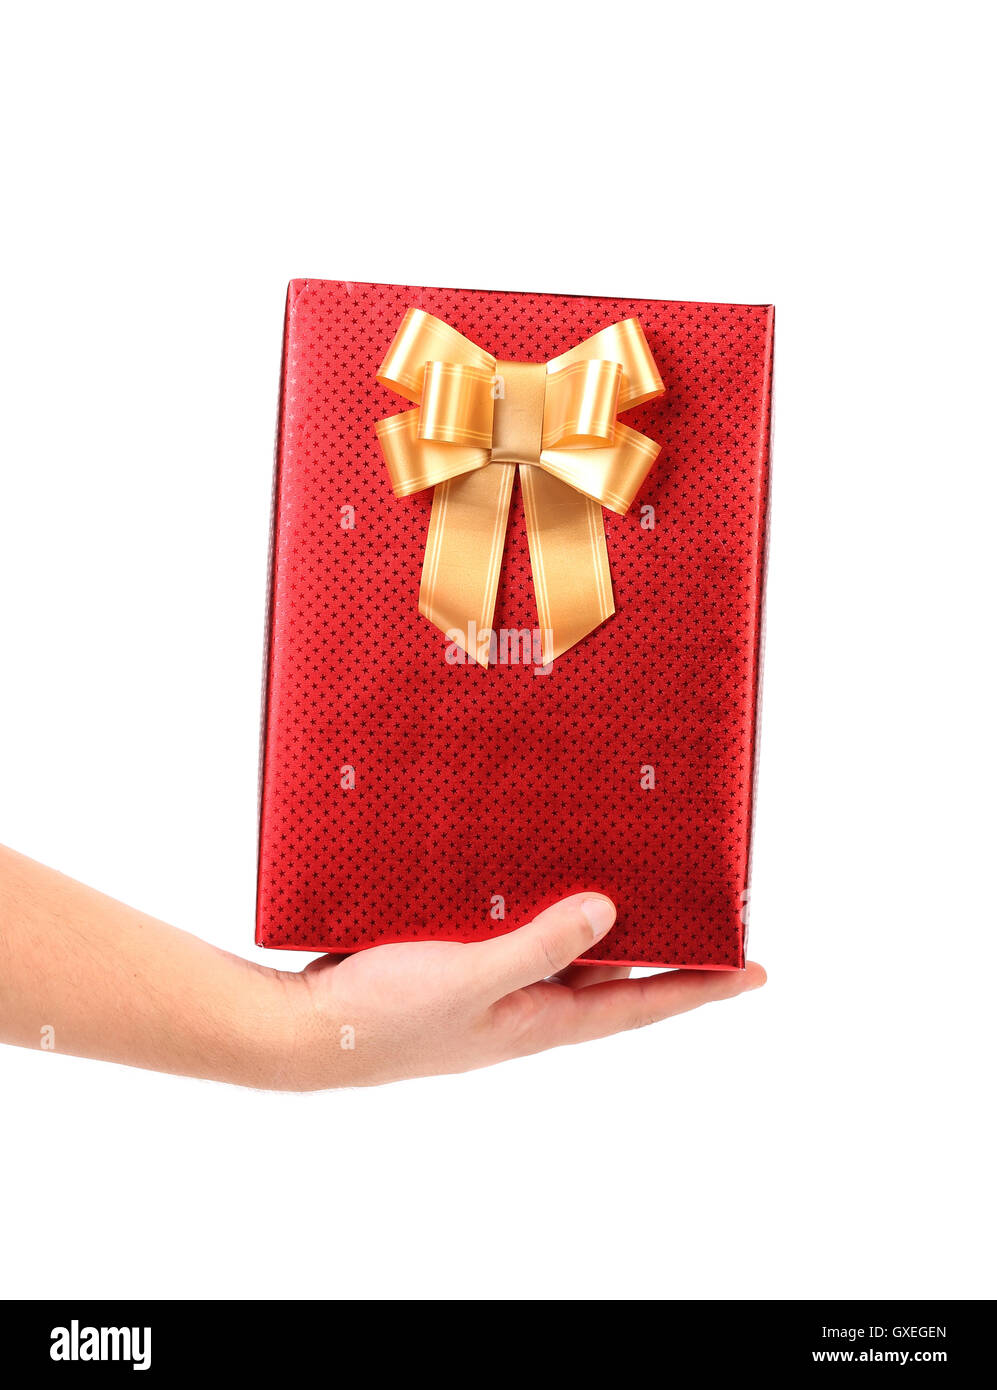 Hand holds box with bow studded asterisks. - Stock Image